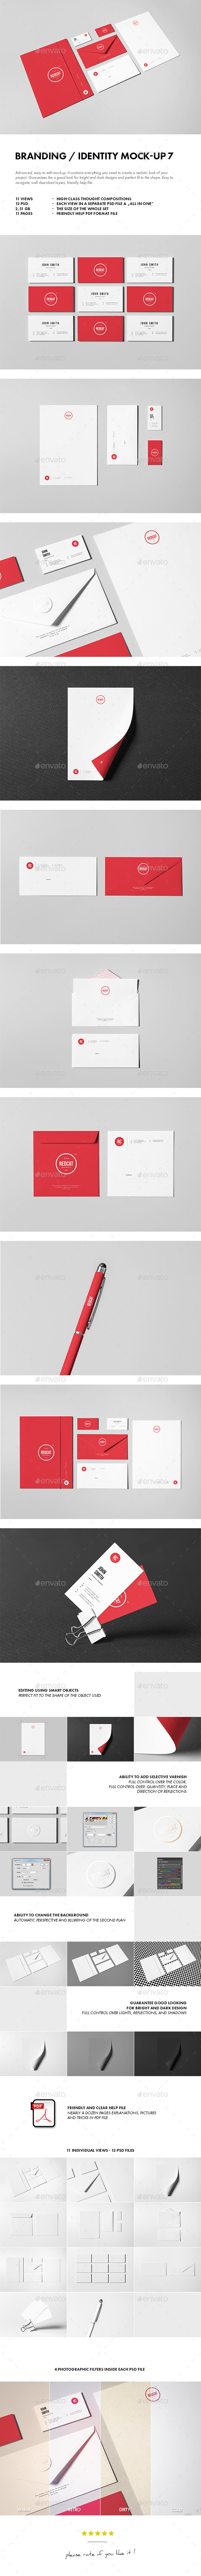 Branding / Identity Mock-up 7 (Stationery)